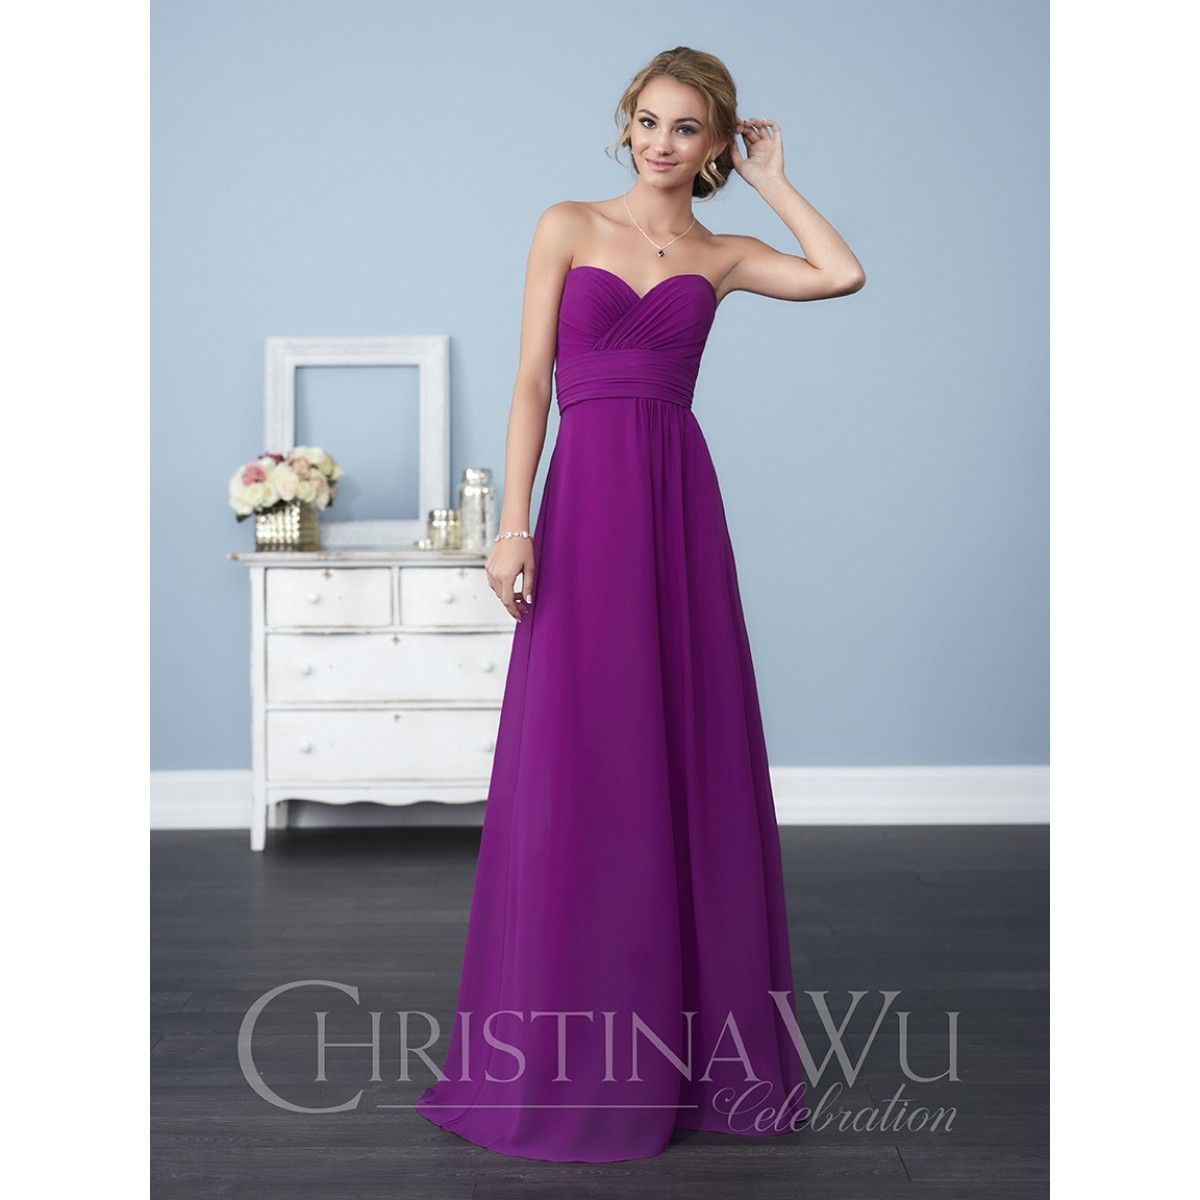 New style 22767 christina wu celebration christina wu christina wu by house of wu bridesmaid dress style 22767 available online for purchase ombrellifo Image collections